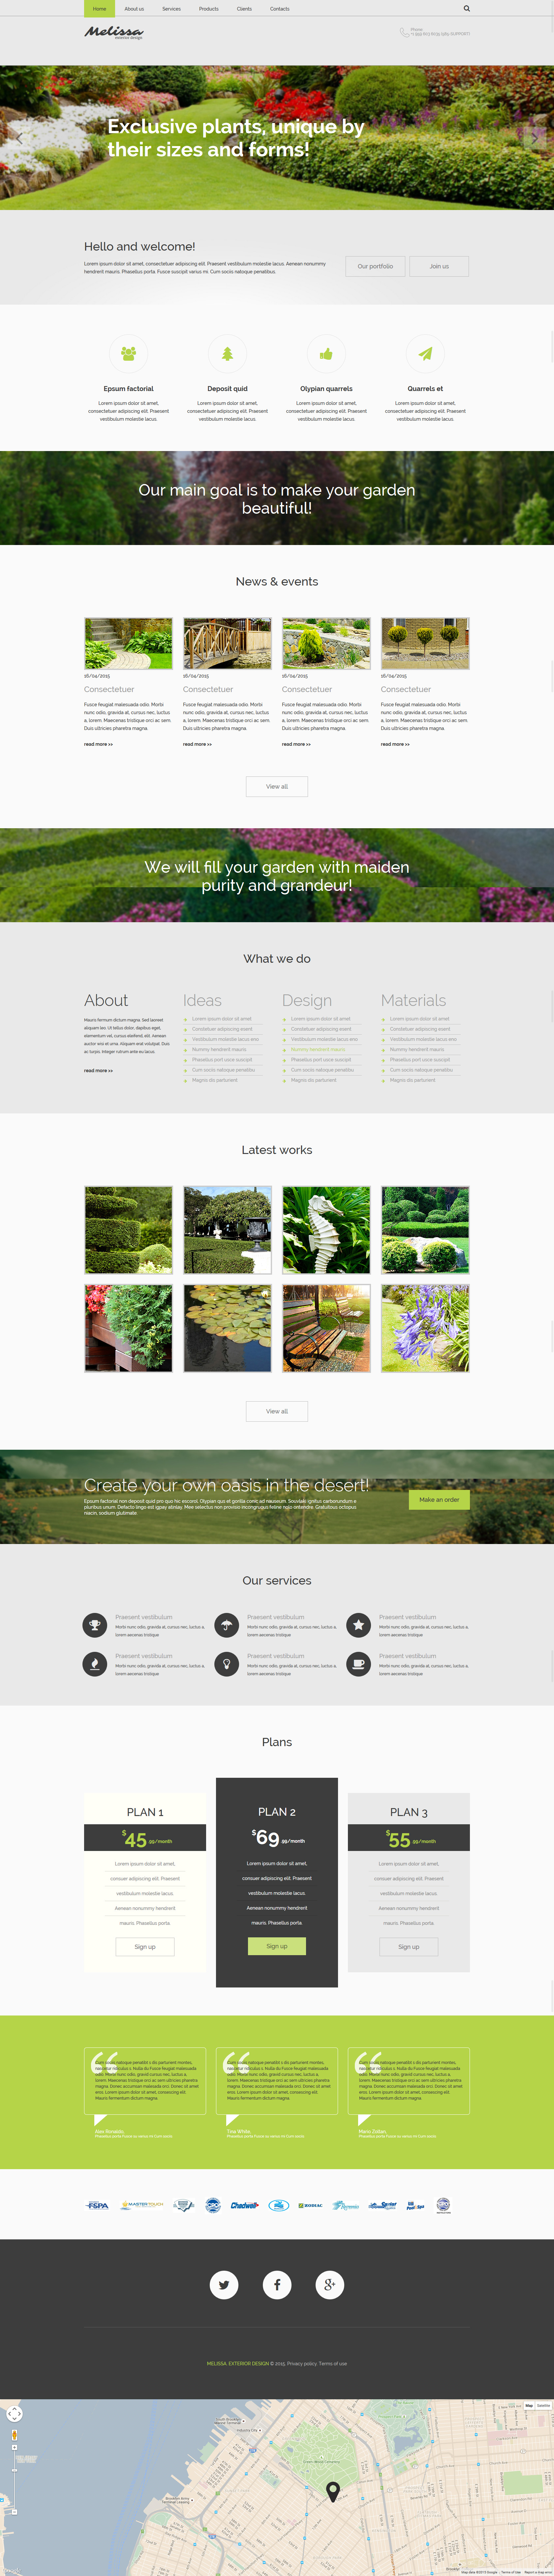 Exterior design responsive website template 55054 for Exterior design website templates